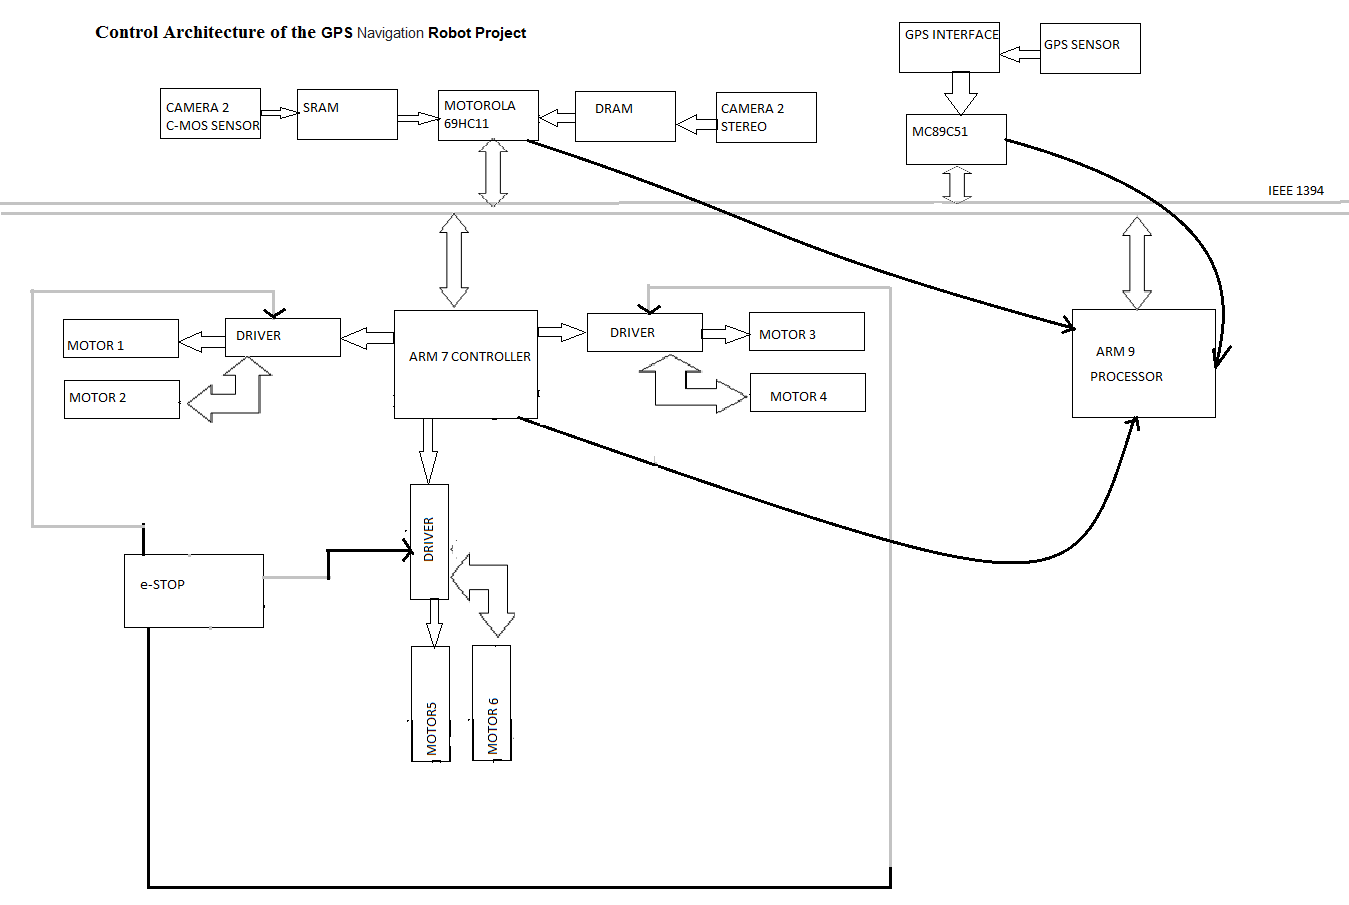 Control Architecture of the GPS Navigation Robot Project